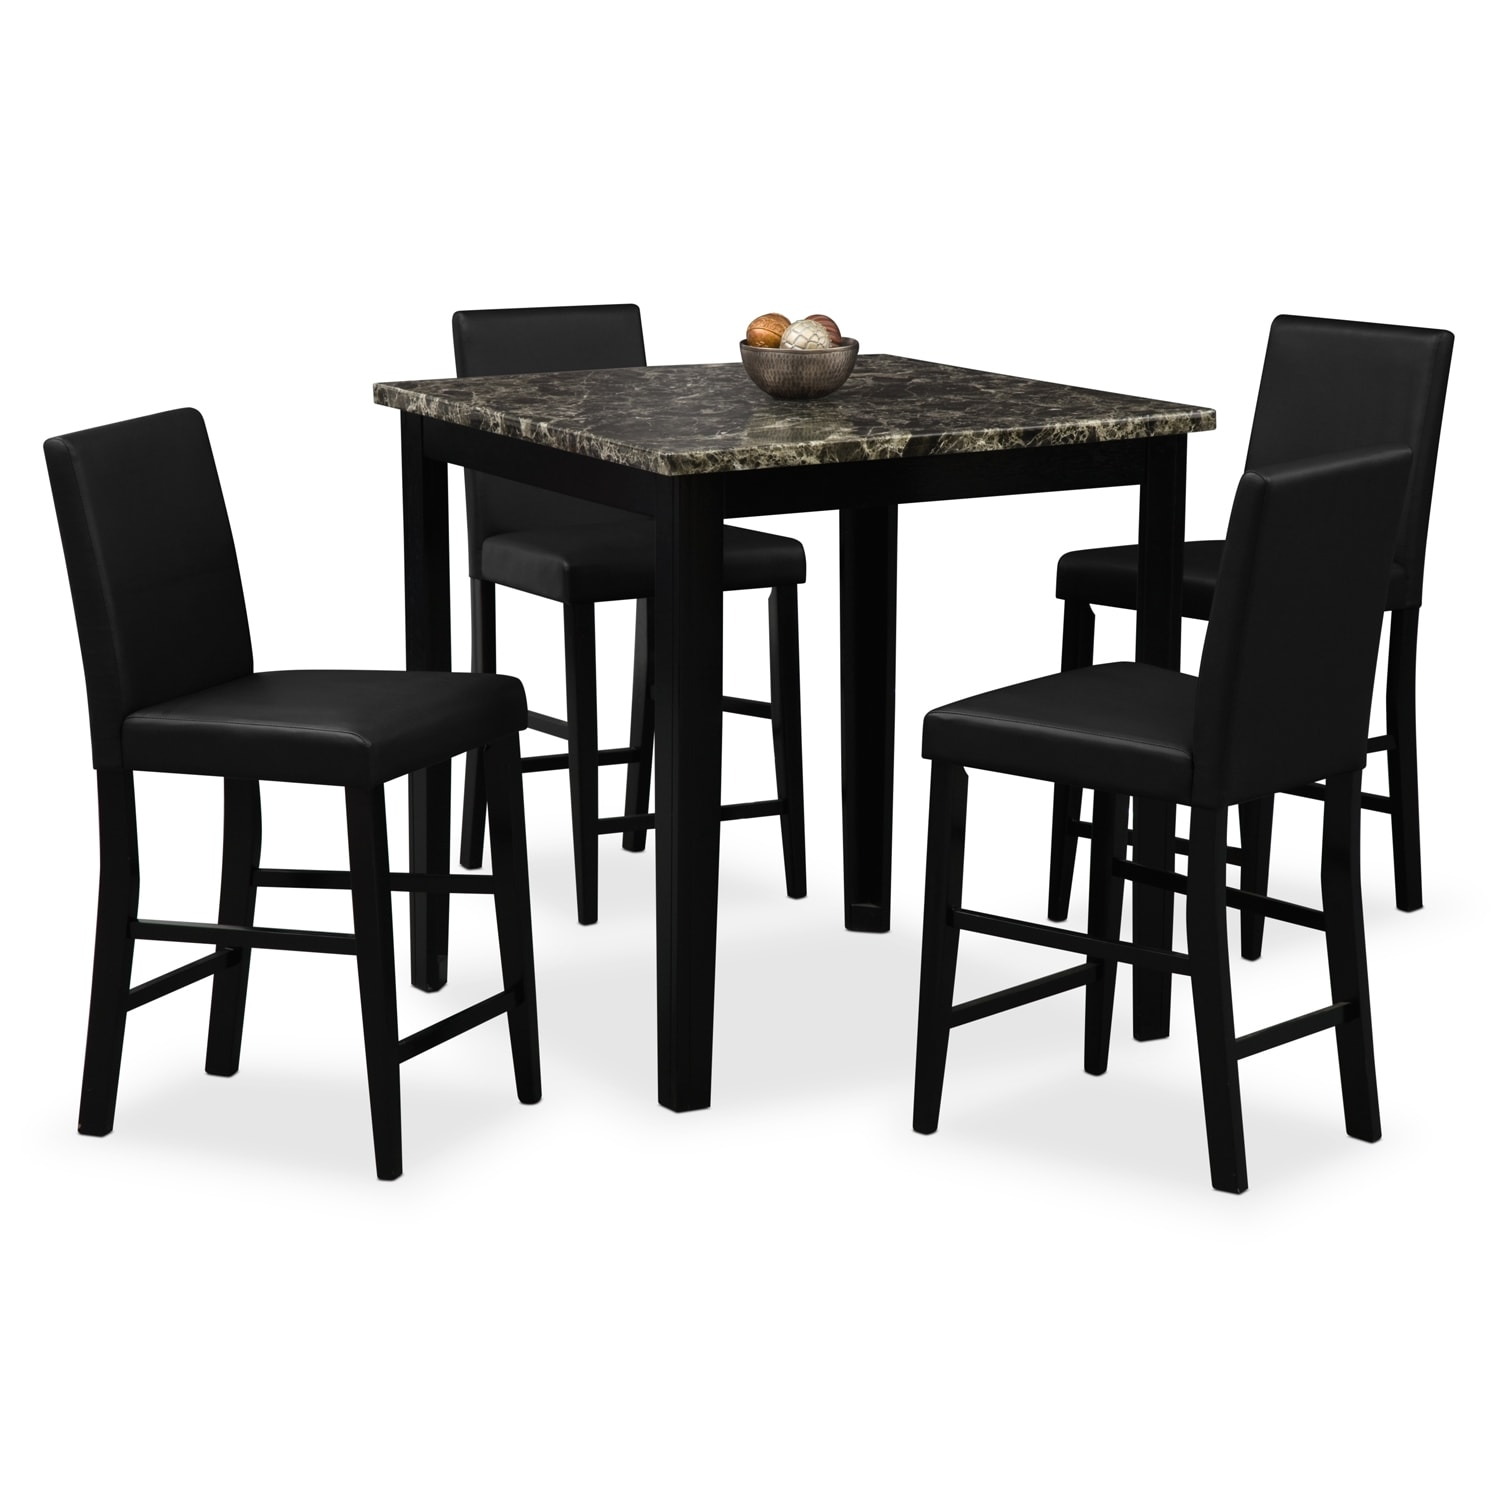 Shadow counter height table and 4 chairs black value for Small black dining table and chairs